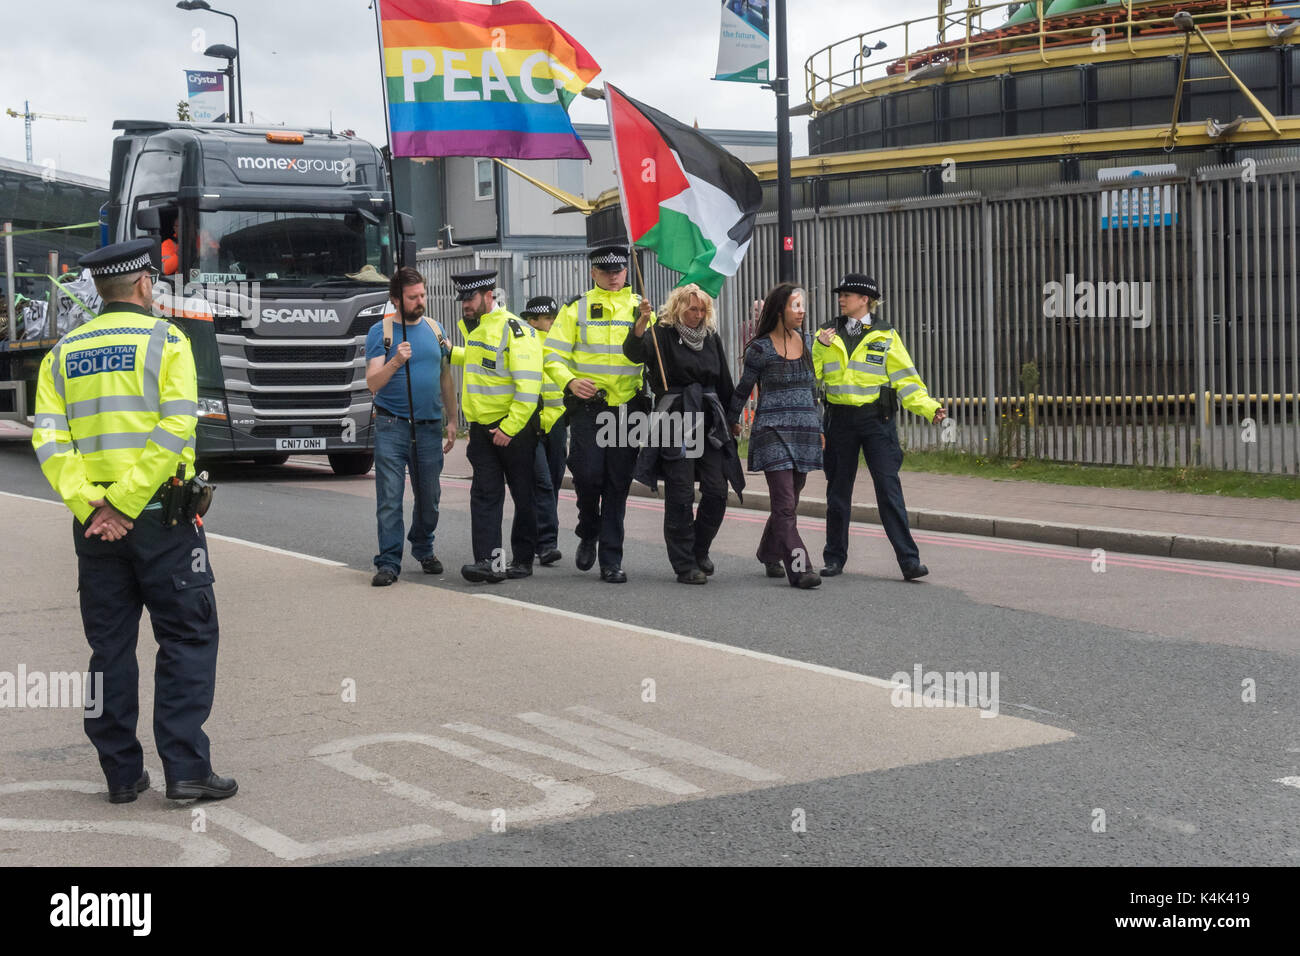 September 5, 2017 - London, UK - London, UK. 5th September 2017. Police officers lead protesters walking slowly Stock Photo